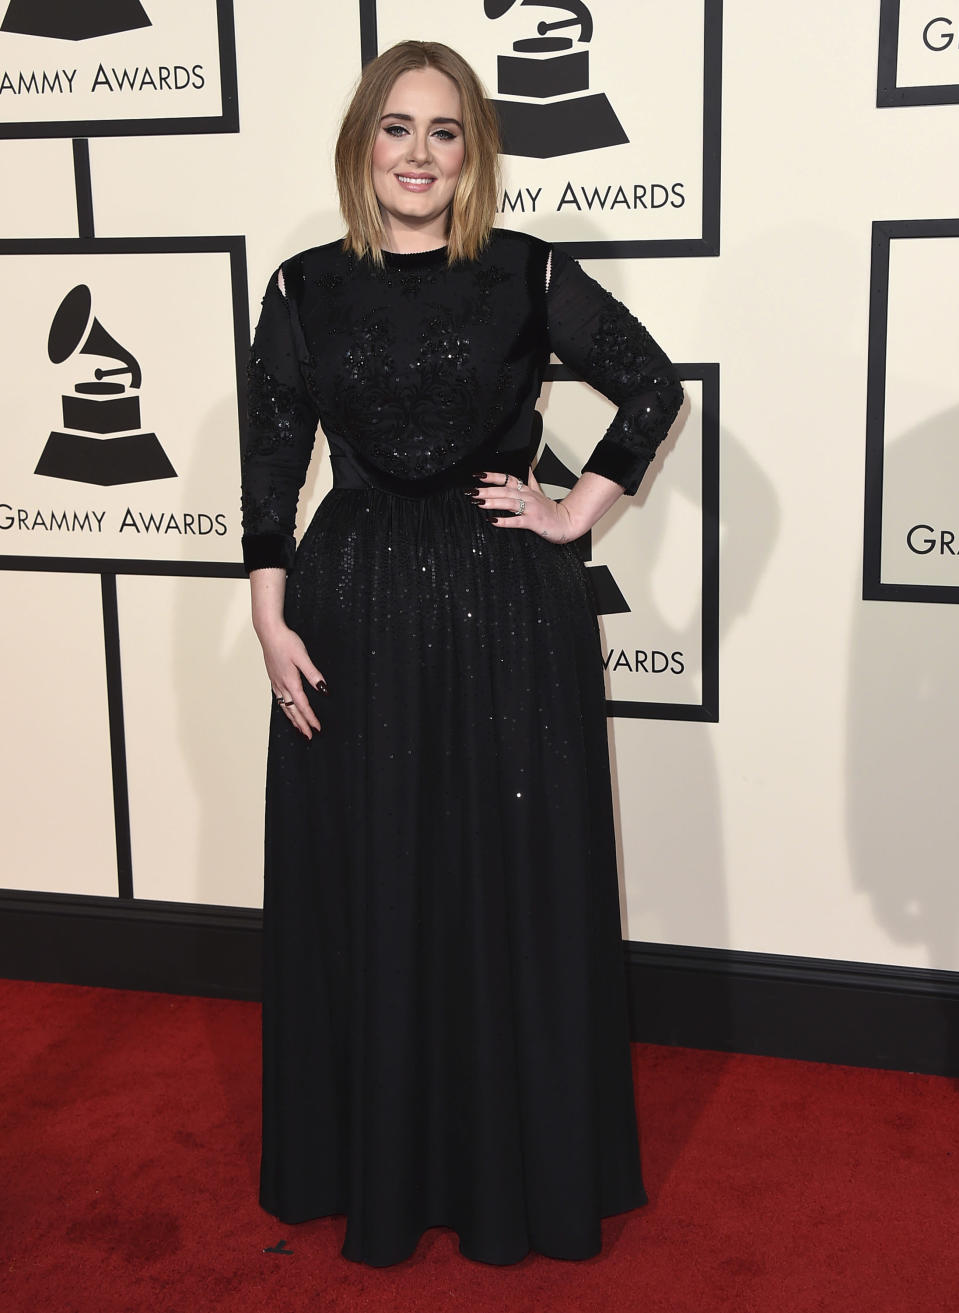 "FILE - In this Feb. 15, 2016 file photo, Adele arrives at the 58th annual Grammy Awards in Los Angeles. Adele is among several musicians who are objecting to their songs being used at President Donald Trump's campaign rallies. Adele made her objections clear when she learned her songs, ""Rolling in the Deep"" and ""Skyfall,"" were playing at Trump rallies. (Photo by Jordan Strauss/Invision/AP, File)"